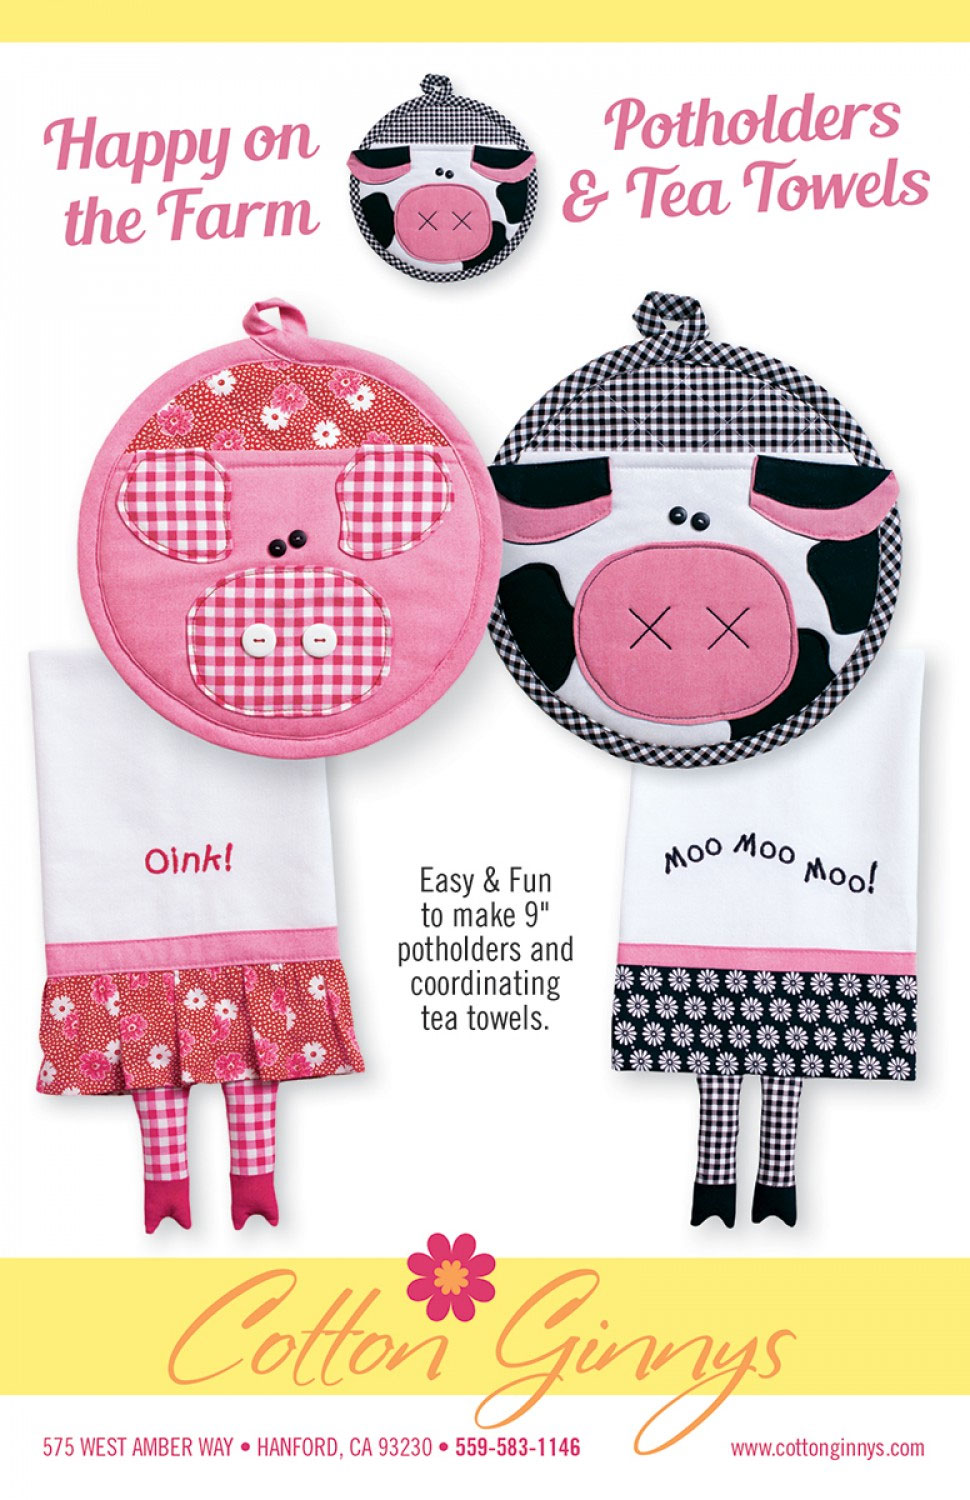 Happy-on-the-Farm-potholders-and-tea-towels-sewing-pattern-Cotton-Ginnys-front